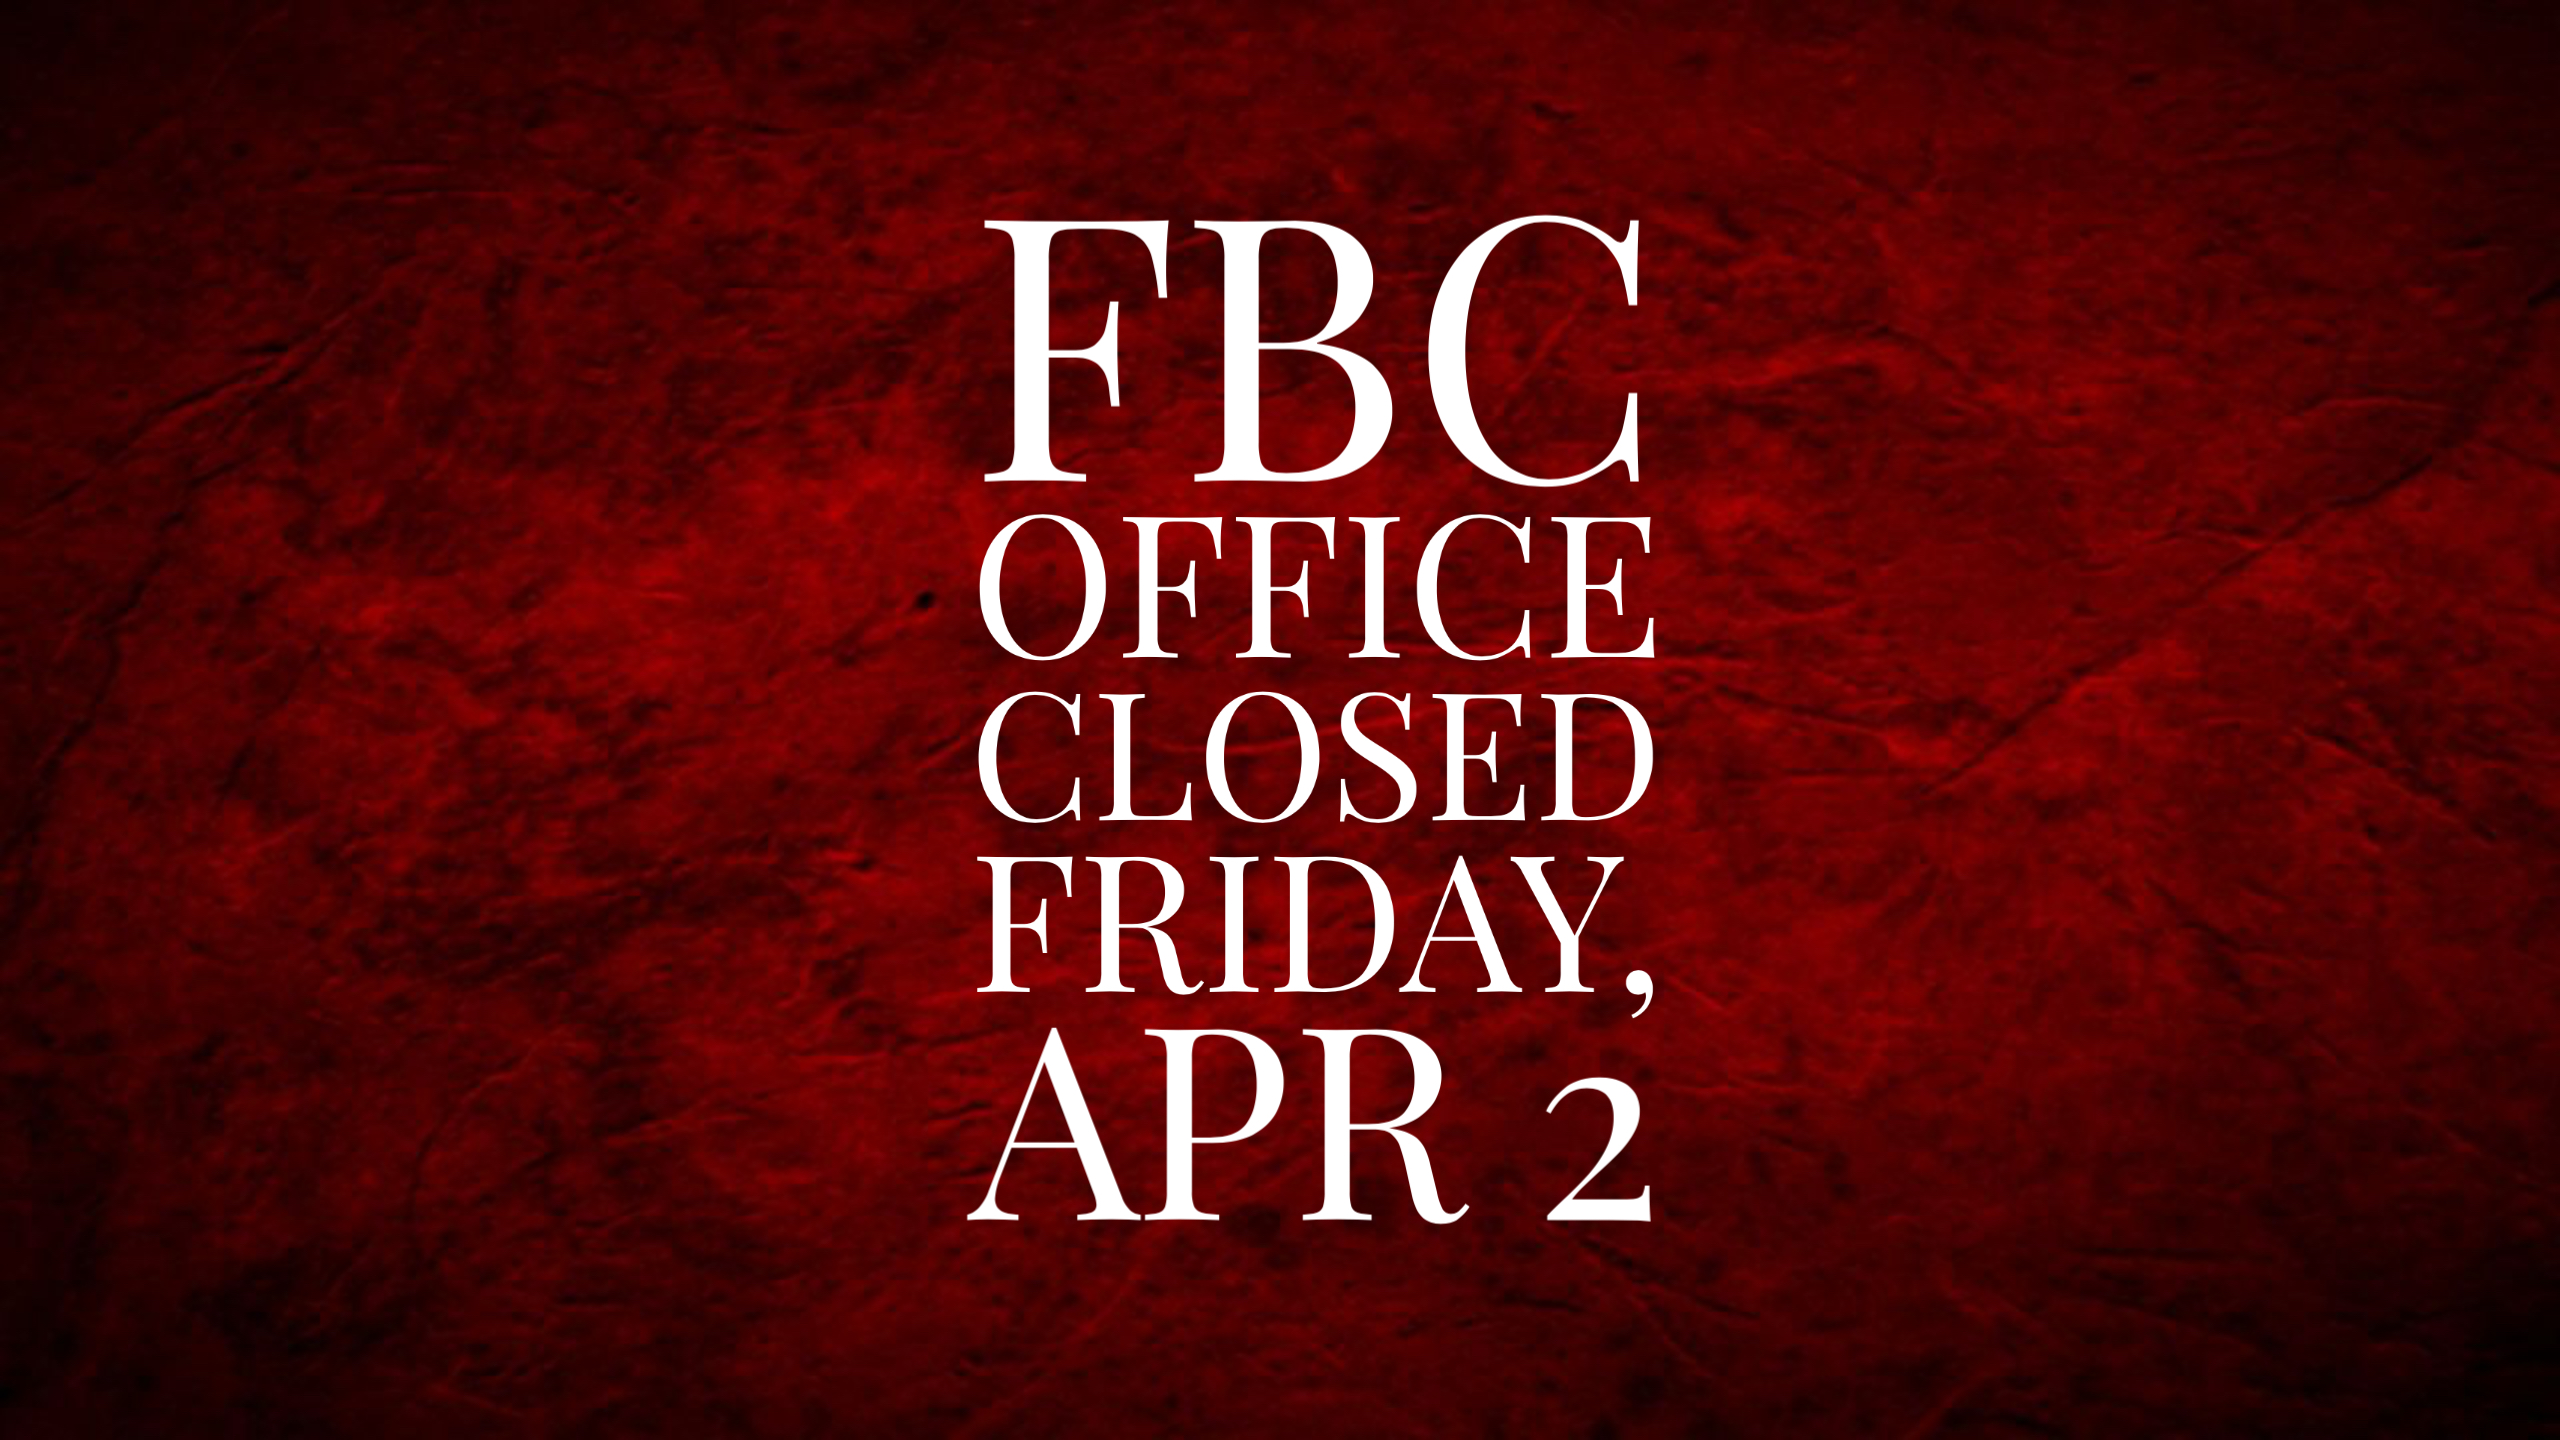 Closed Good Fri image